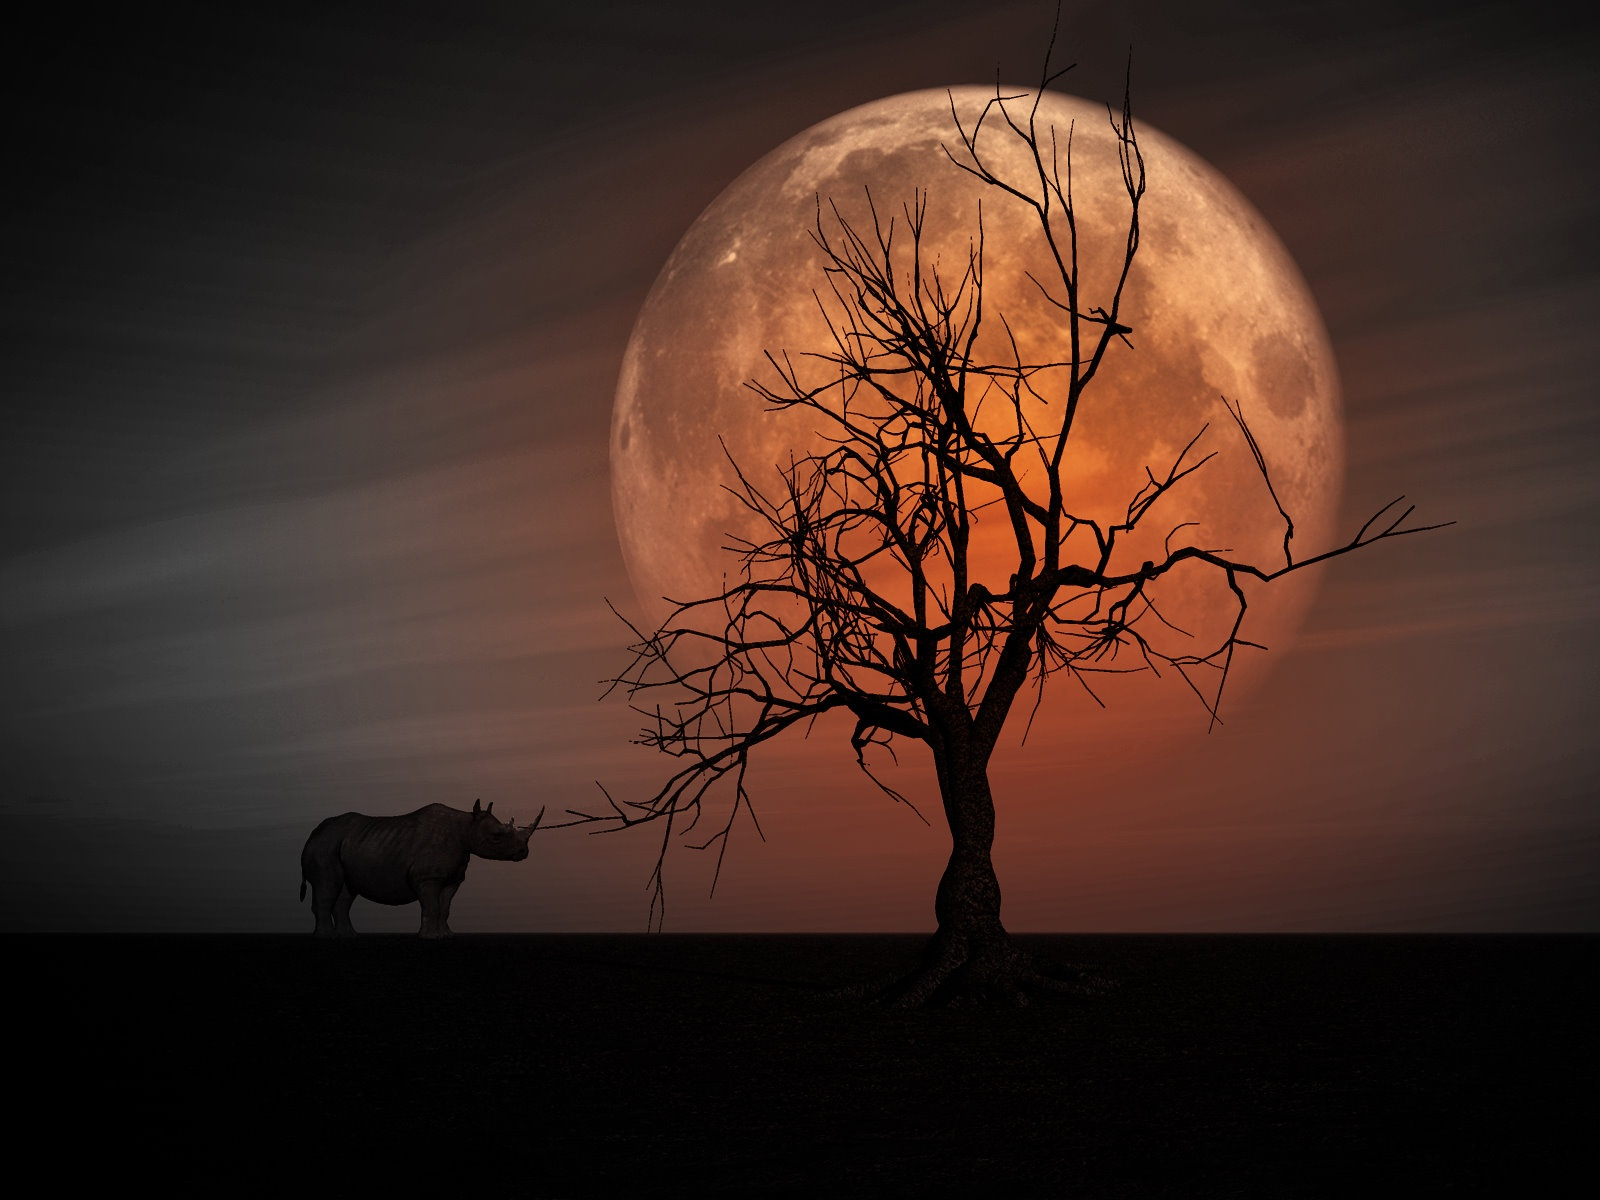 Rhino wallpaper and background image 1600x1200 id 216480 for Art and photography websites